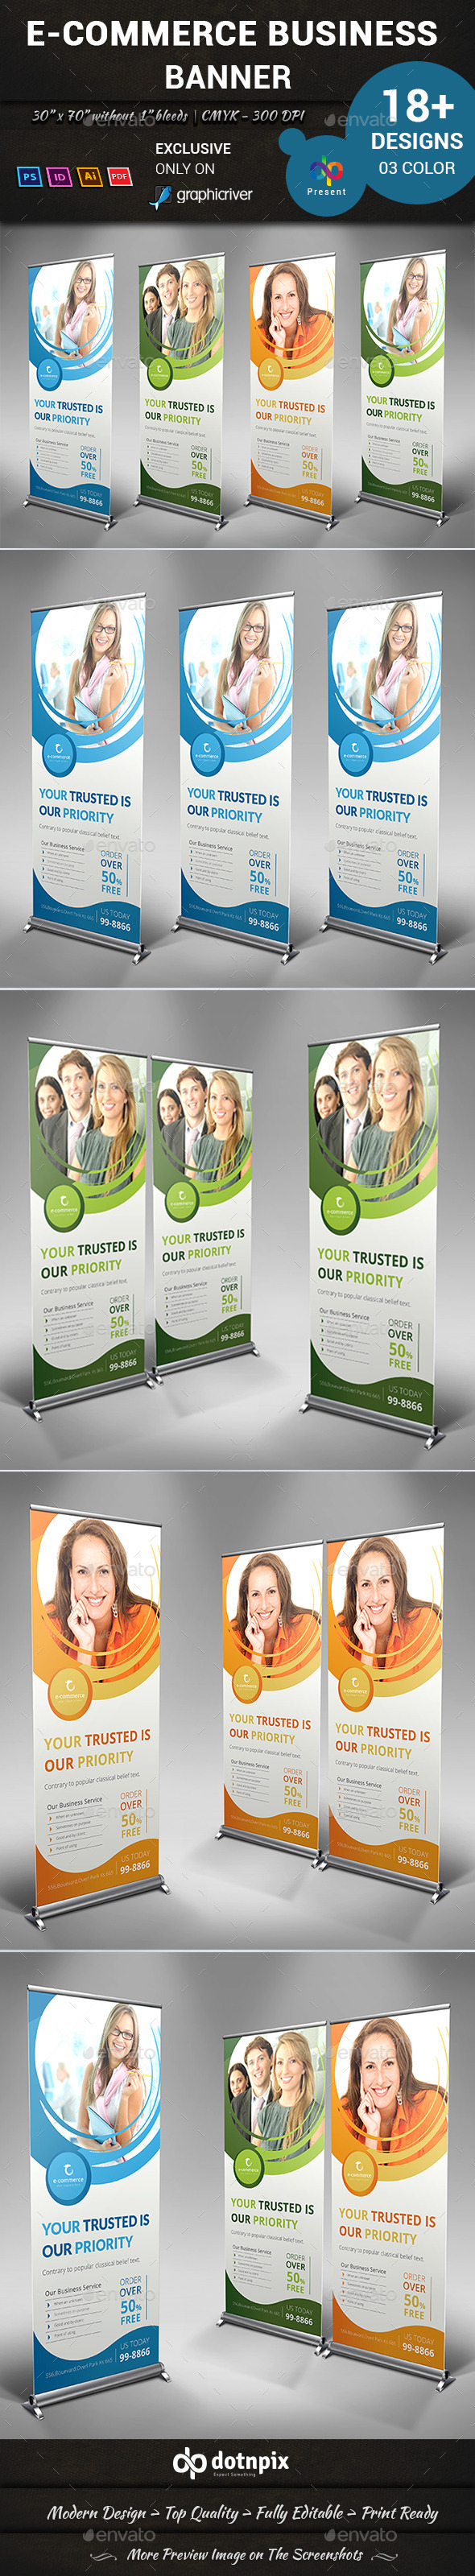 E-Commerce Business Banner - Signage Print Templates